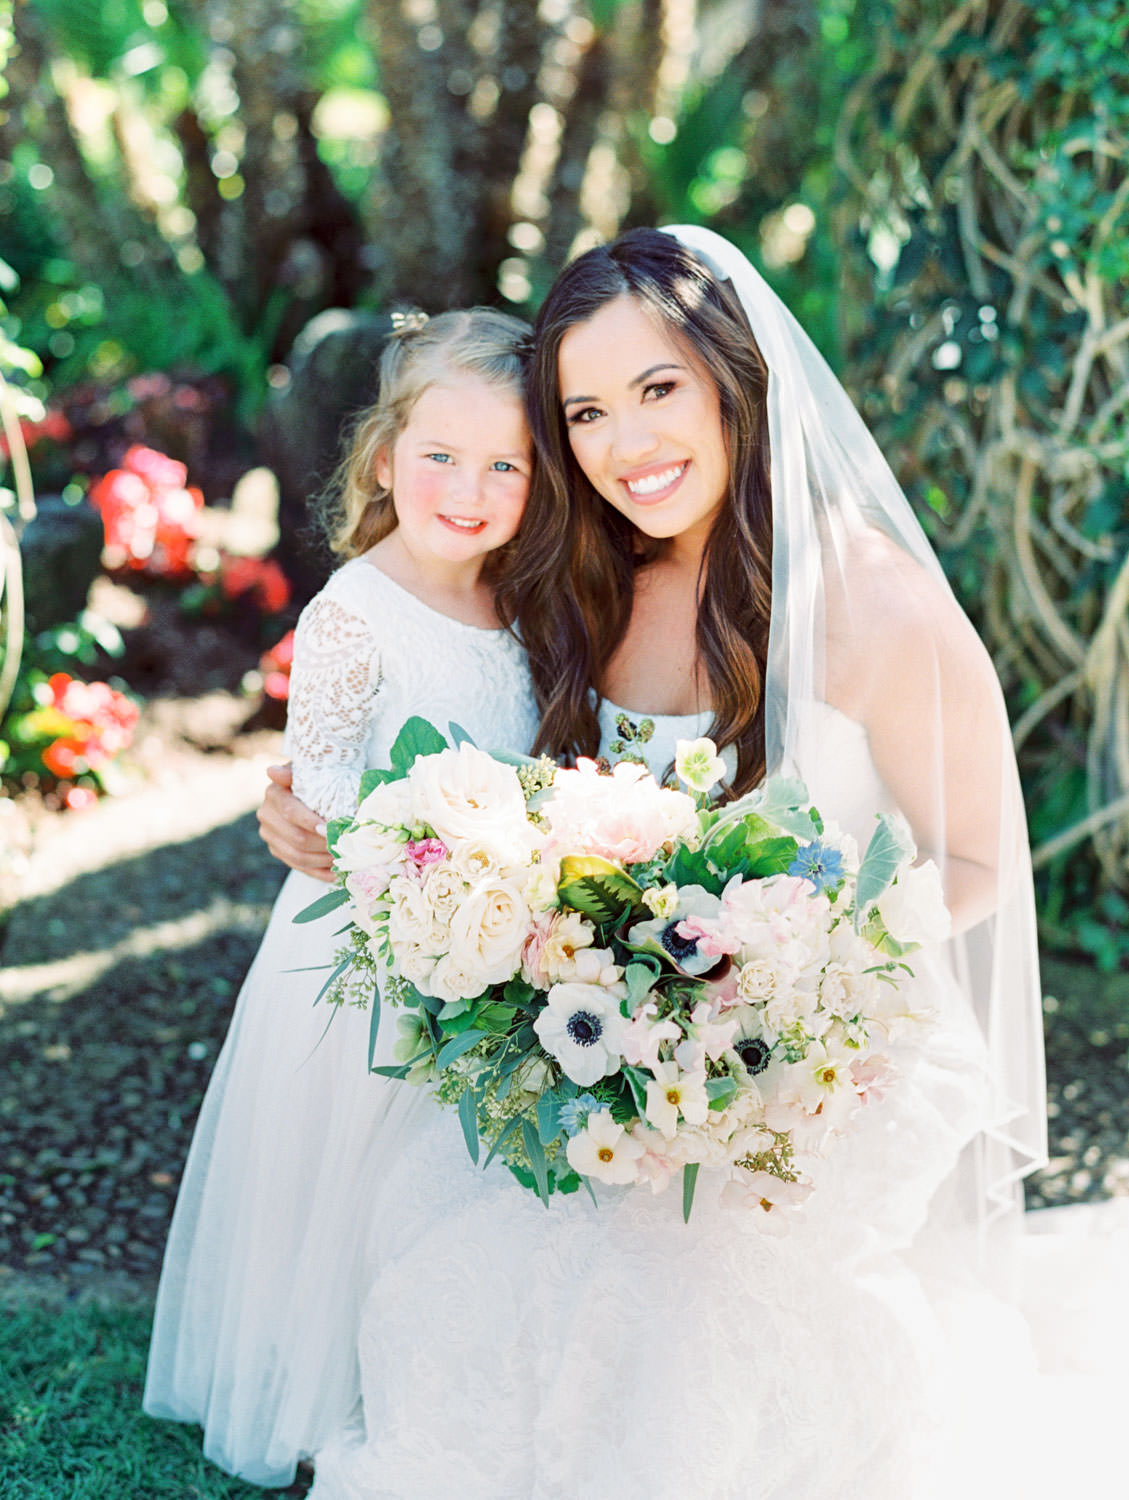 Flower girl with lace white dress and bride in strapless lace gown. Bouquet with anemones, greenery, ivory, and blush flowers captured on film. Wedding at Humphreys Half Moon Inn by Cavin Elizabeth Photography